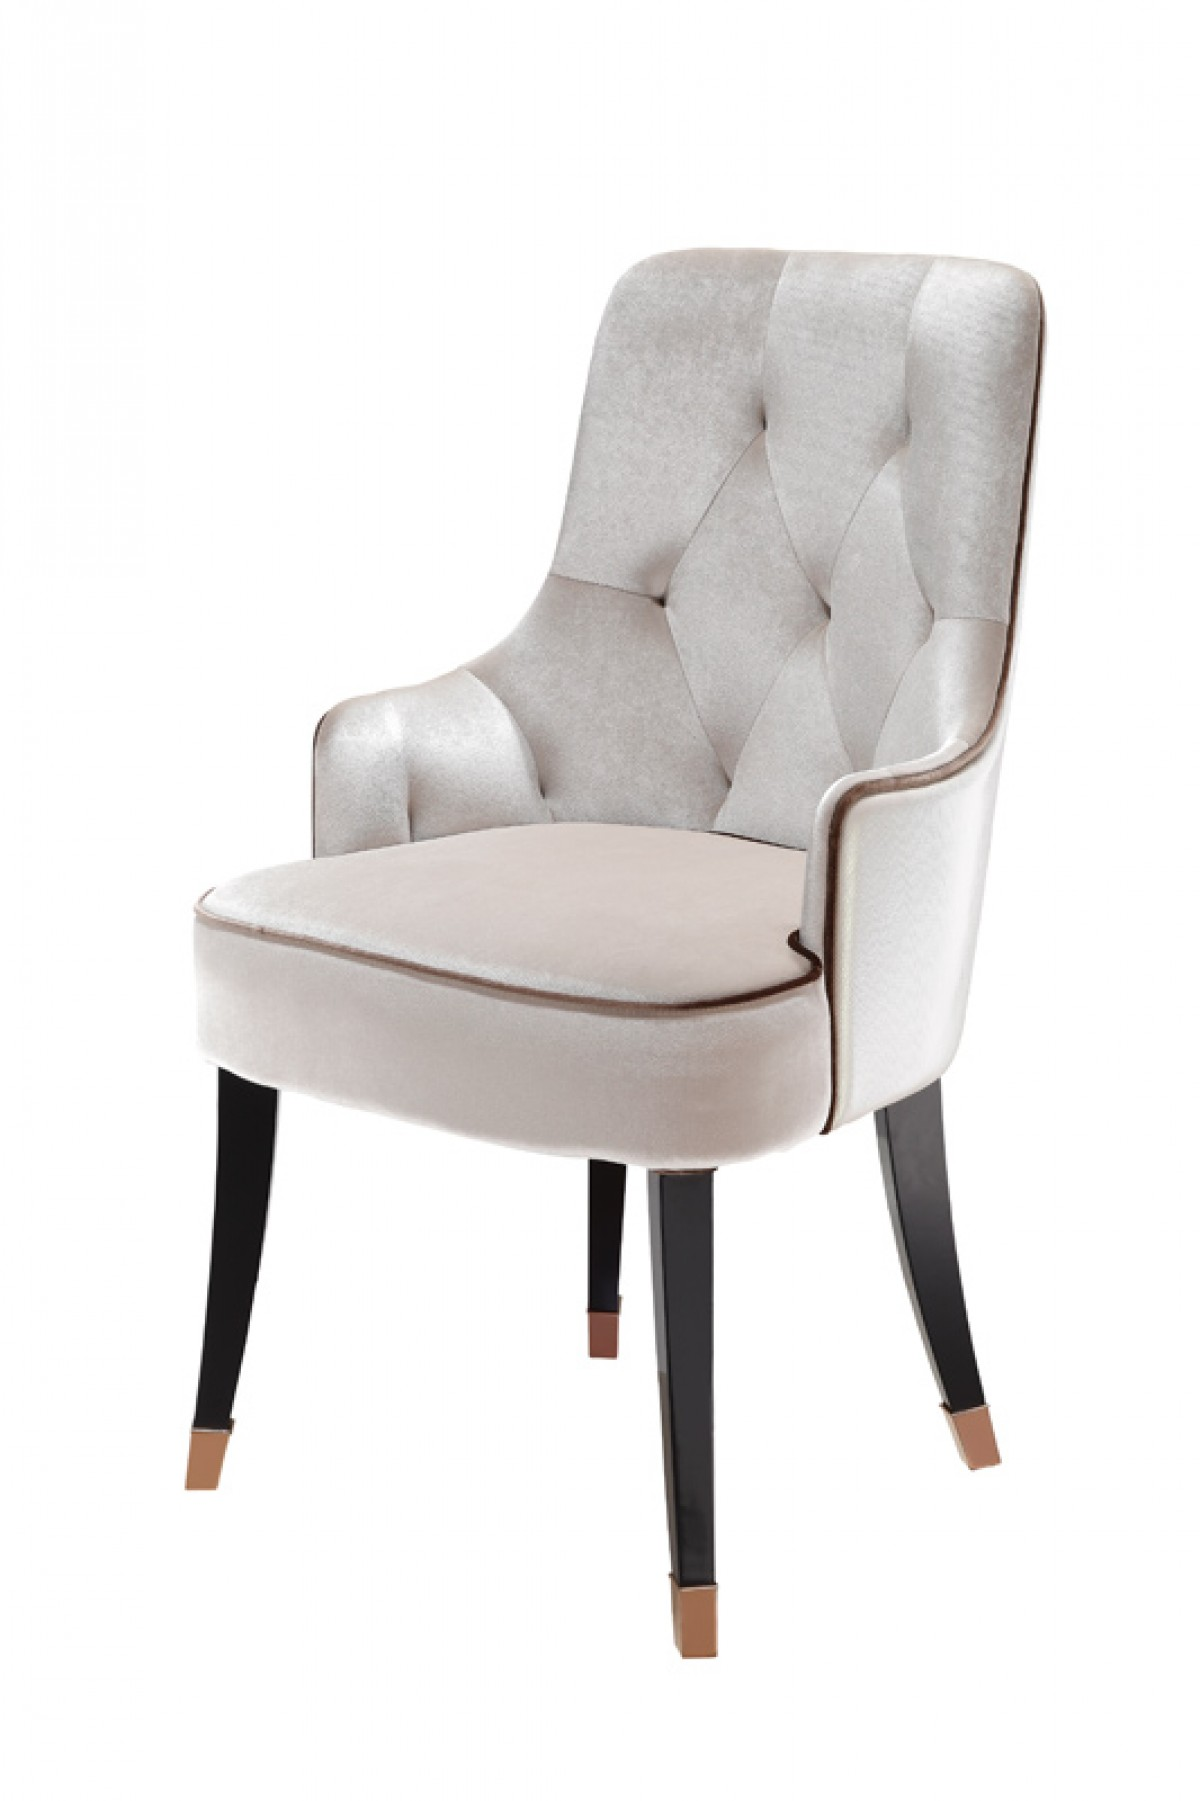 A larissa modern white fabric dining chair